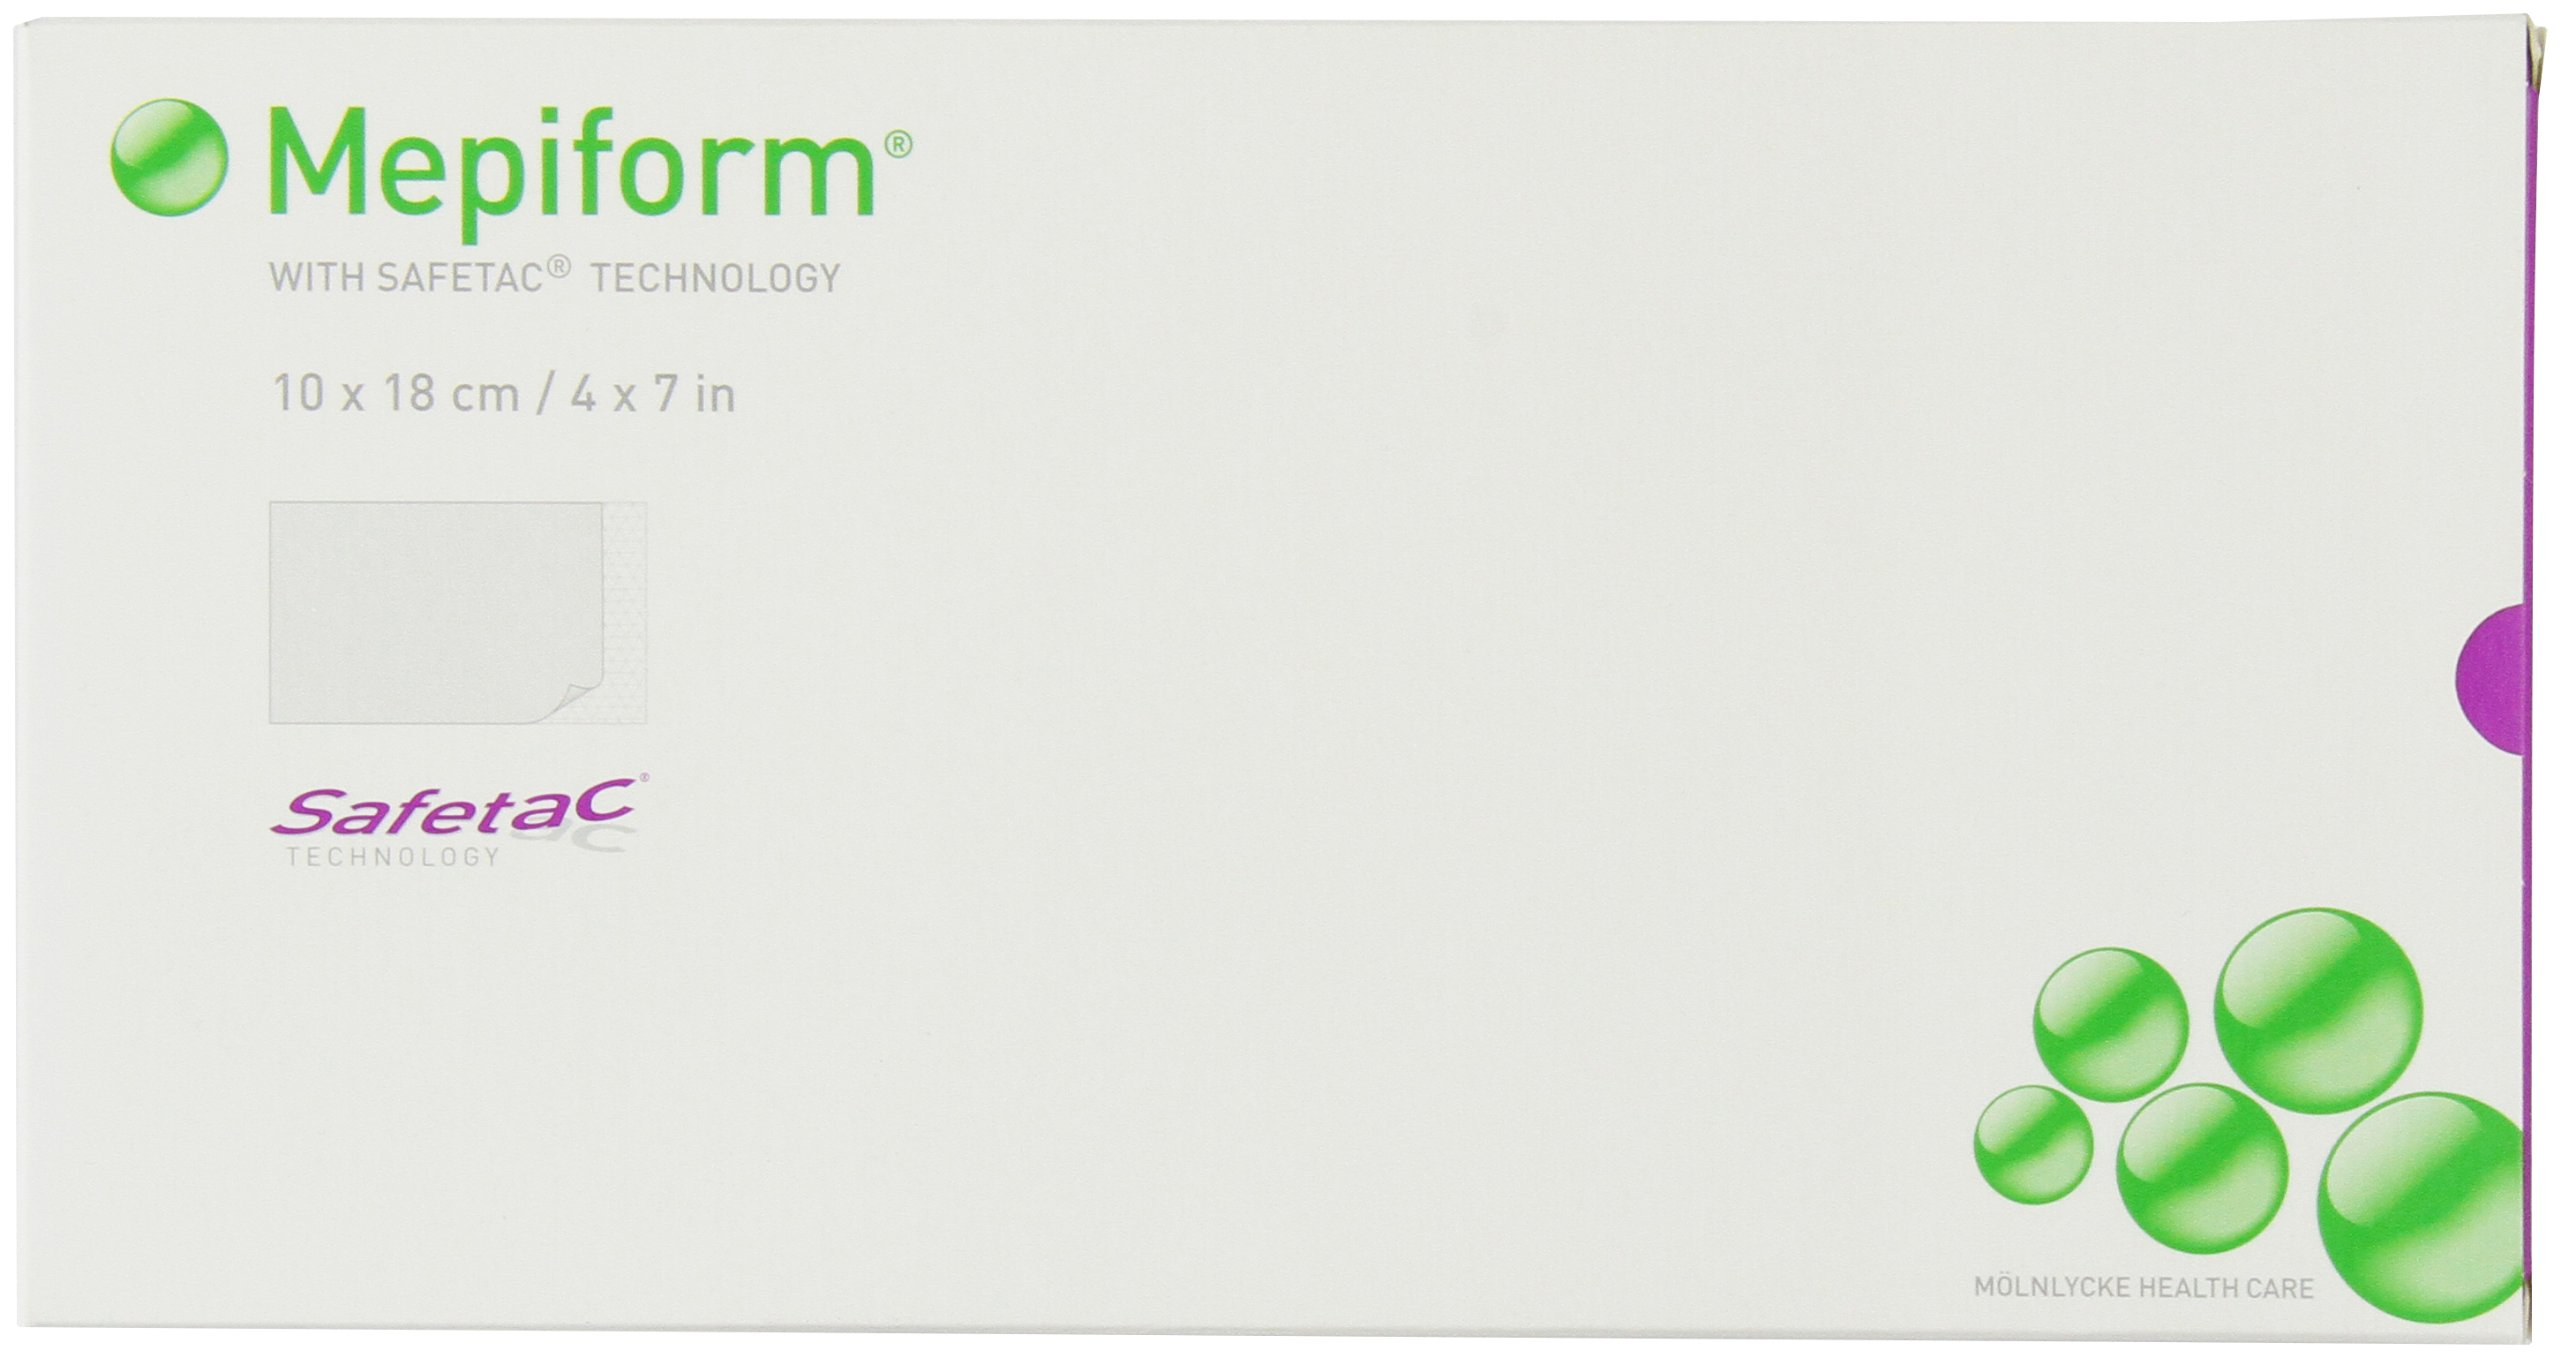 Mepiform with Safetac Technology 4''x7'', 5 Count, Self Adherent Soft Silicone Sheeting for Scar Reduction by Molnlycke